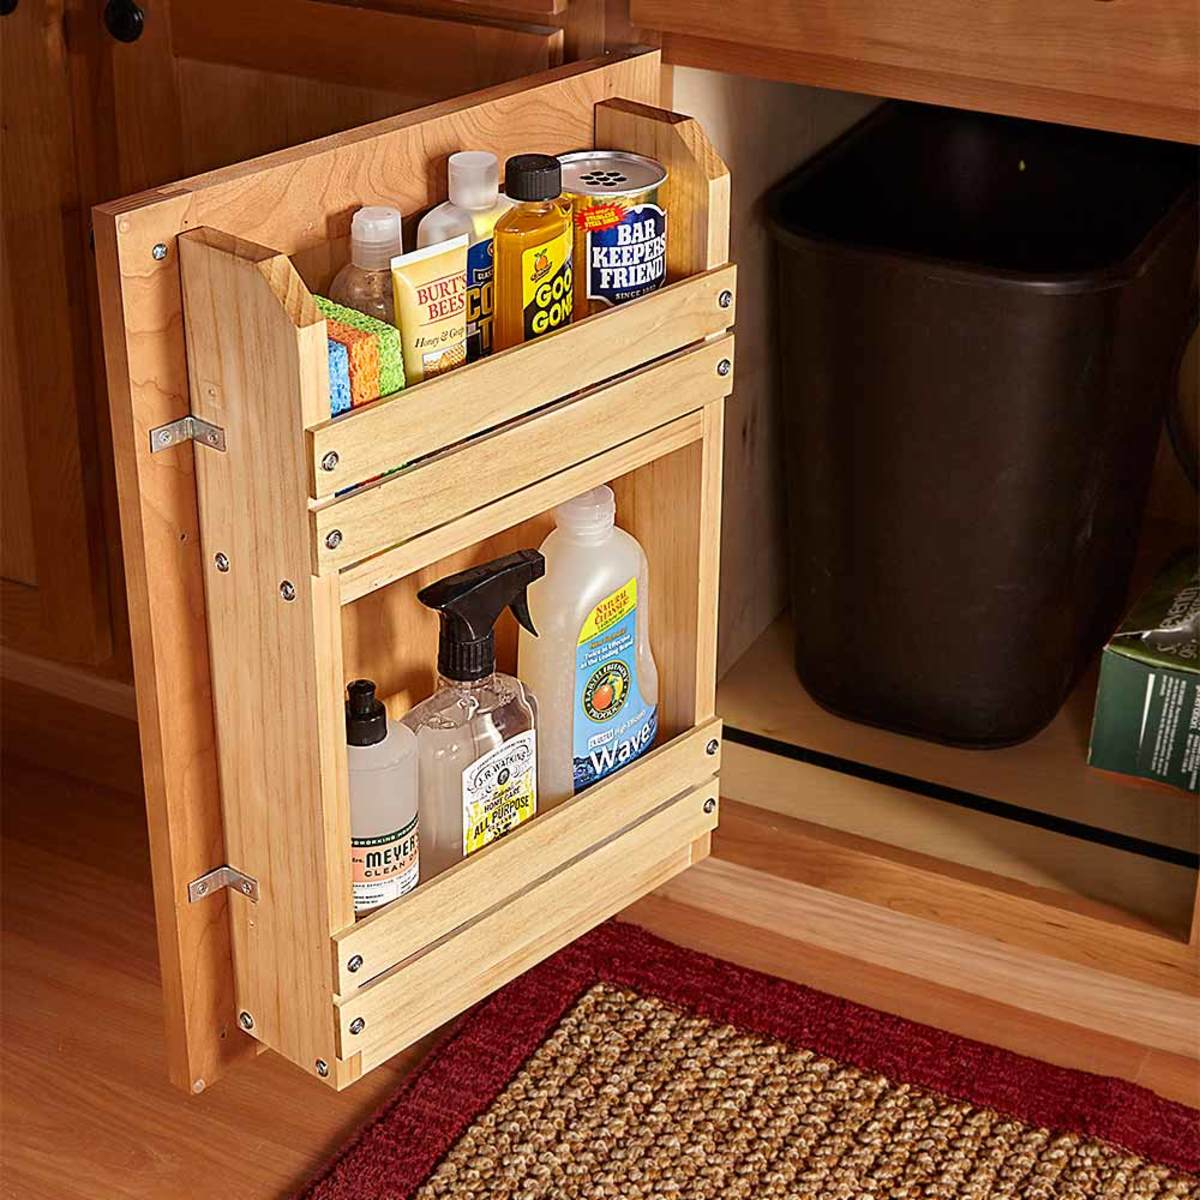 This simple wooden cabinet door storage rack frees up valuable under the sink storage while offering easy access to frequently used cleaning supplies.